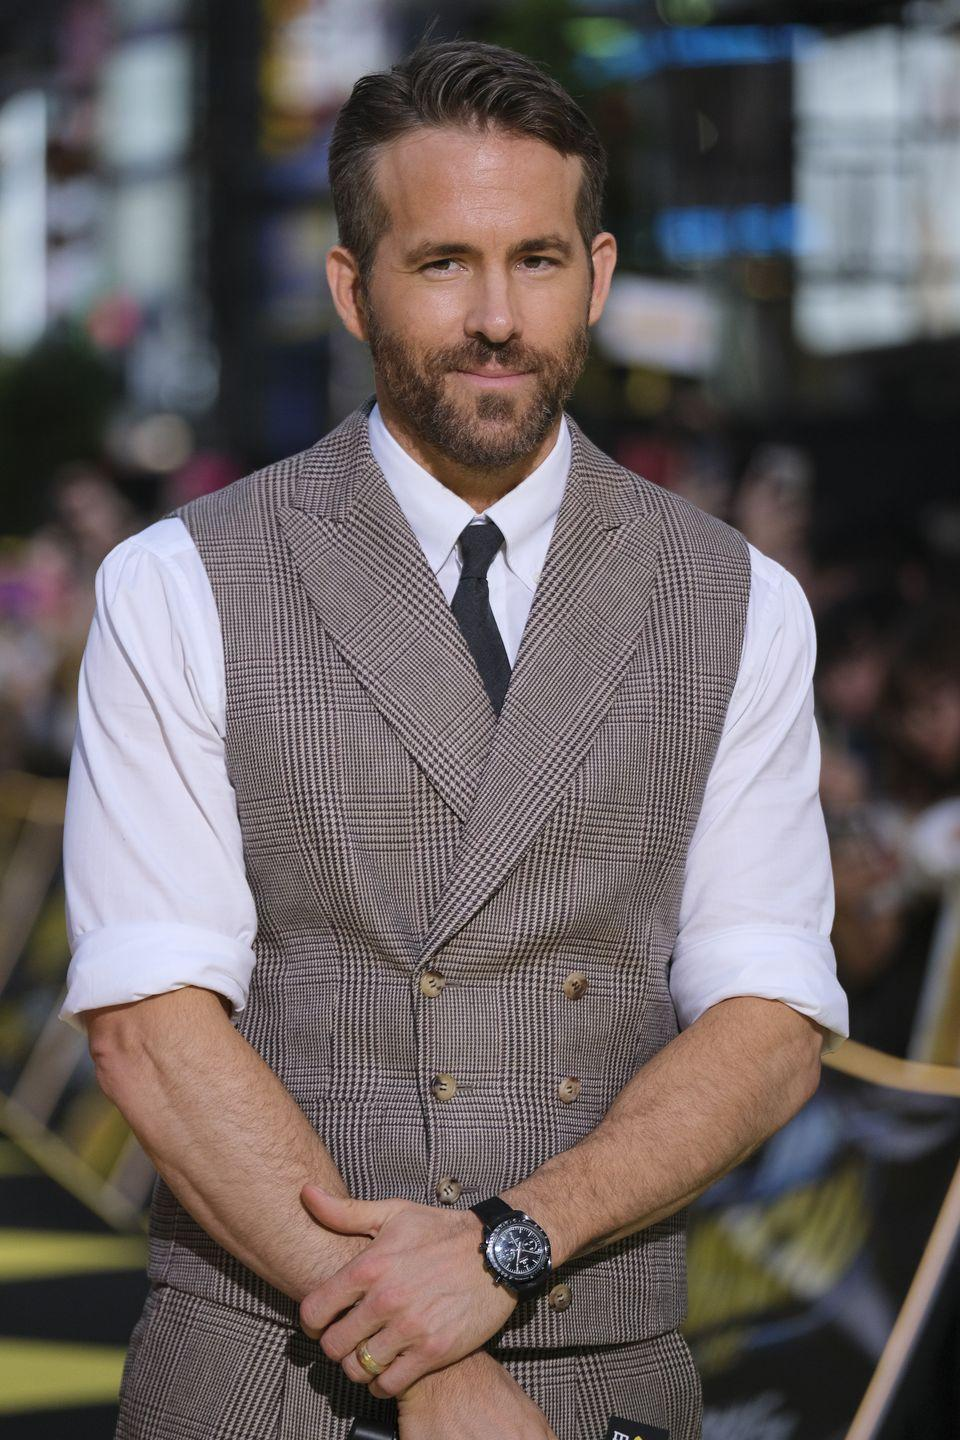 "<p>""I have anxiety, I've always had anxiety,"" Ryan Reynolds <a href=""https://www.nytimes.com/2018/05/02/movies/ryan-reynolds-deadpool-2.html"" rel=""nofollow noopener"" target=""_blank"" data-ylk=""slk:told the New York Times in May 2018"" class=""link rapid-noclick-resp"">told the <em>New York Times</em> in May 2018</a>. ""Both in the lighthearted 'I'm anxious about this' kind of thing, and I've been to the depths of the darker end of the spectrum, which is not fun."" The <em>Deadpool</em> actor says growing up with a tough father impacted him as a kid, and the effects may have followed him into adulthood. ""He wasn't easy on anyone. And he wasn't easy on himself. I think the anxiety might have started there, trying to find ways to control others by trying to control myself.""</p>"